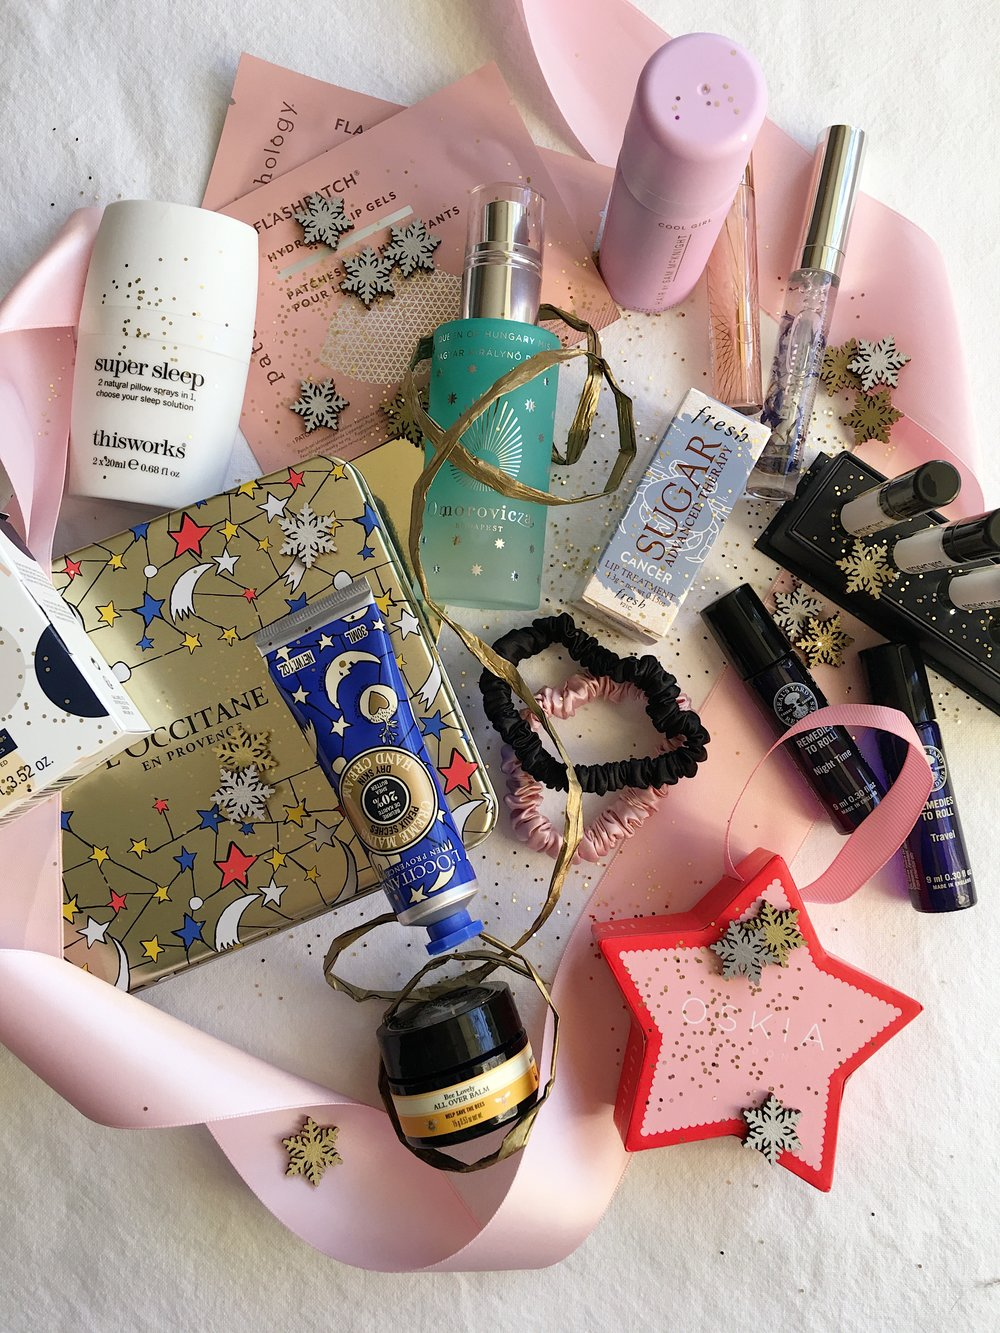 - T'is the season of gifting and I'm kick starting my Christmas Gift Guides this year with one of my favourites, the stocking fillers. A bundle of little gifts from socks, candles and books to beauty minis and baubles filled with a limited edition festive hand cream. In this beauty edit you'll find every skin, hair, makeup and travel essential you friend, Mum, sister or fellow beauty lover will need this Christmas.